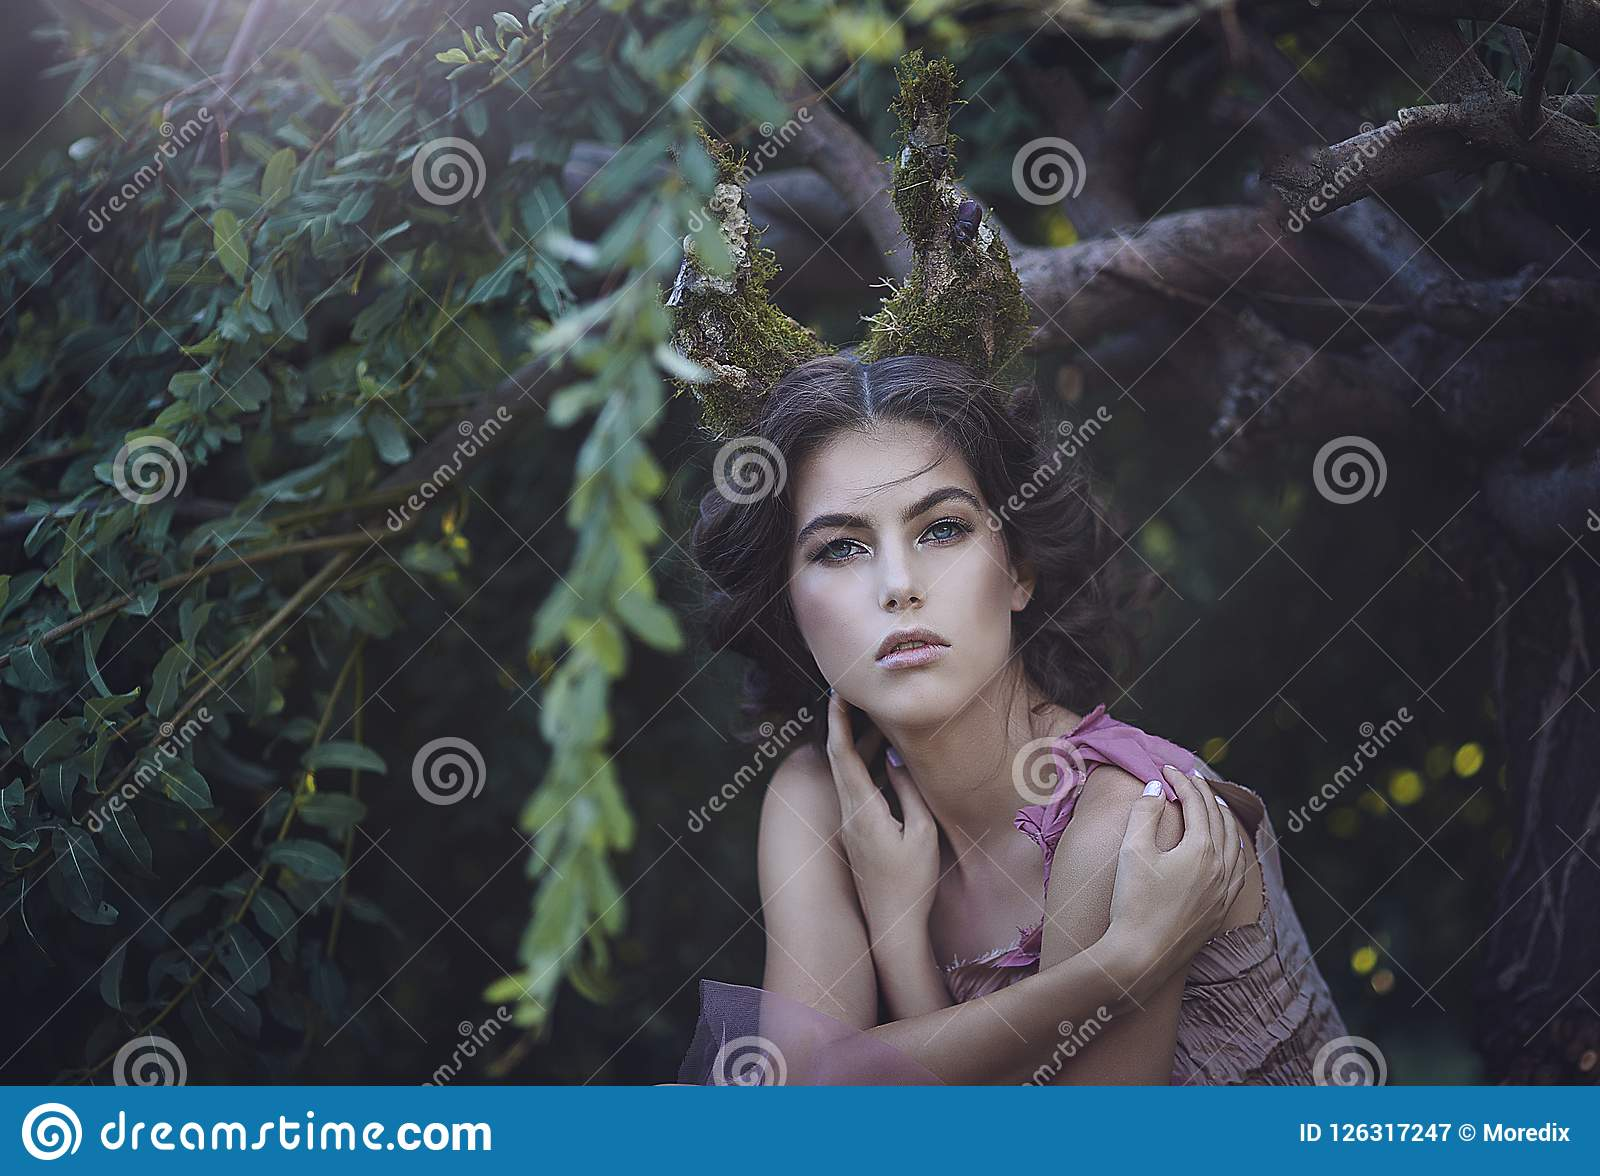 Portrait of girl enchanted Princess with horns. Girl Mystical creature fawn in shabby clothes in a fairy forest